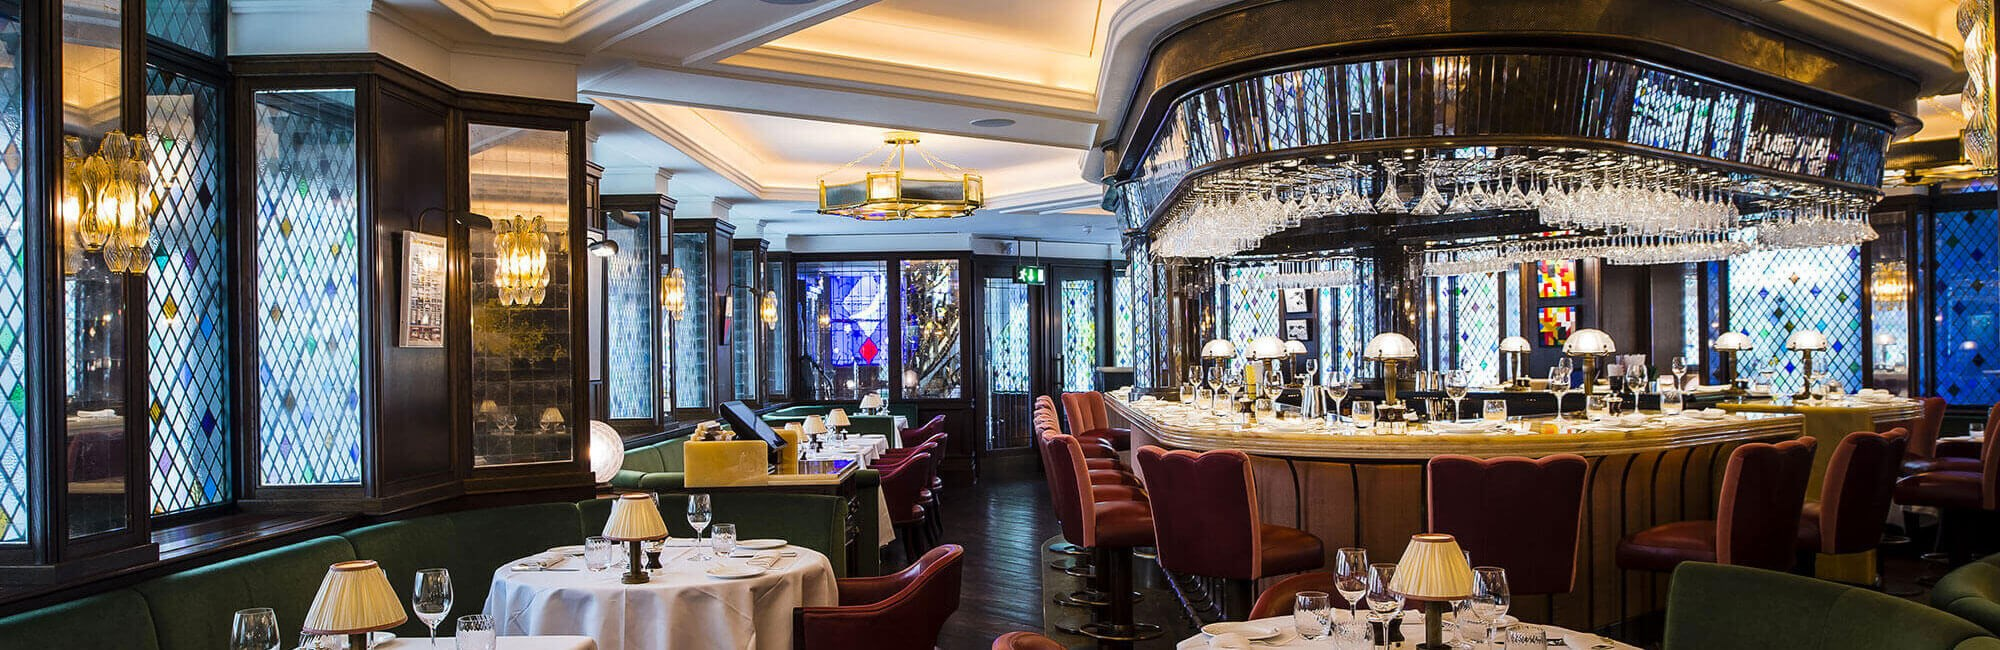 The Ivy, British restaurant in Covent Garden, London